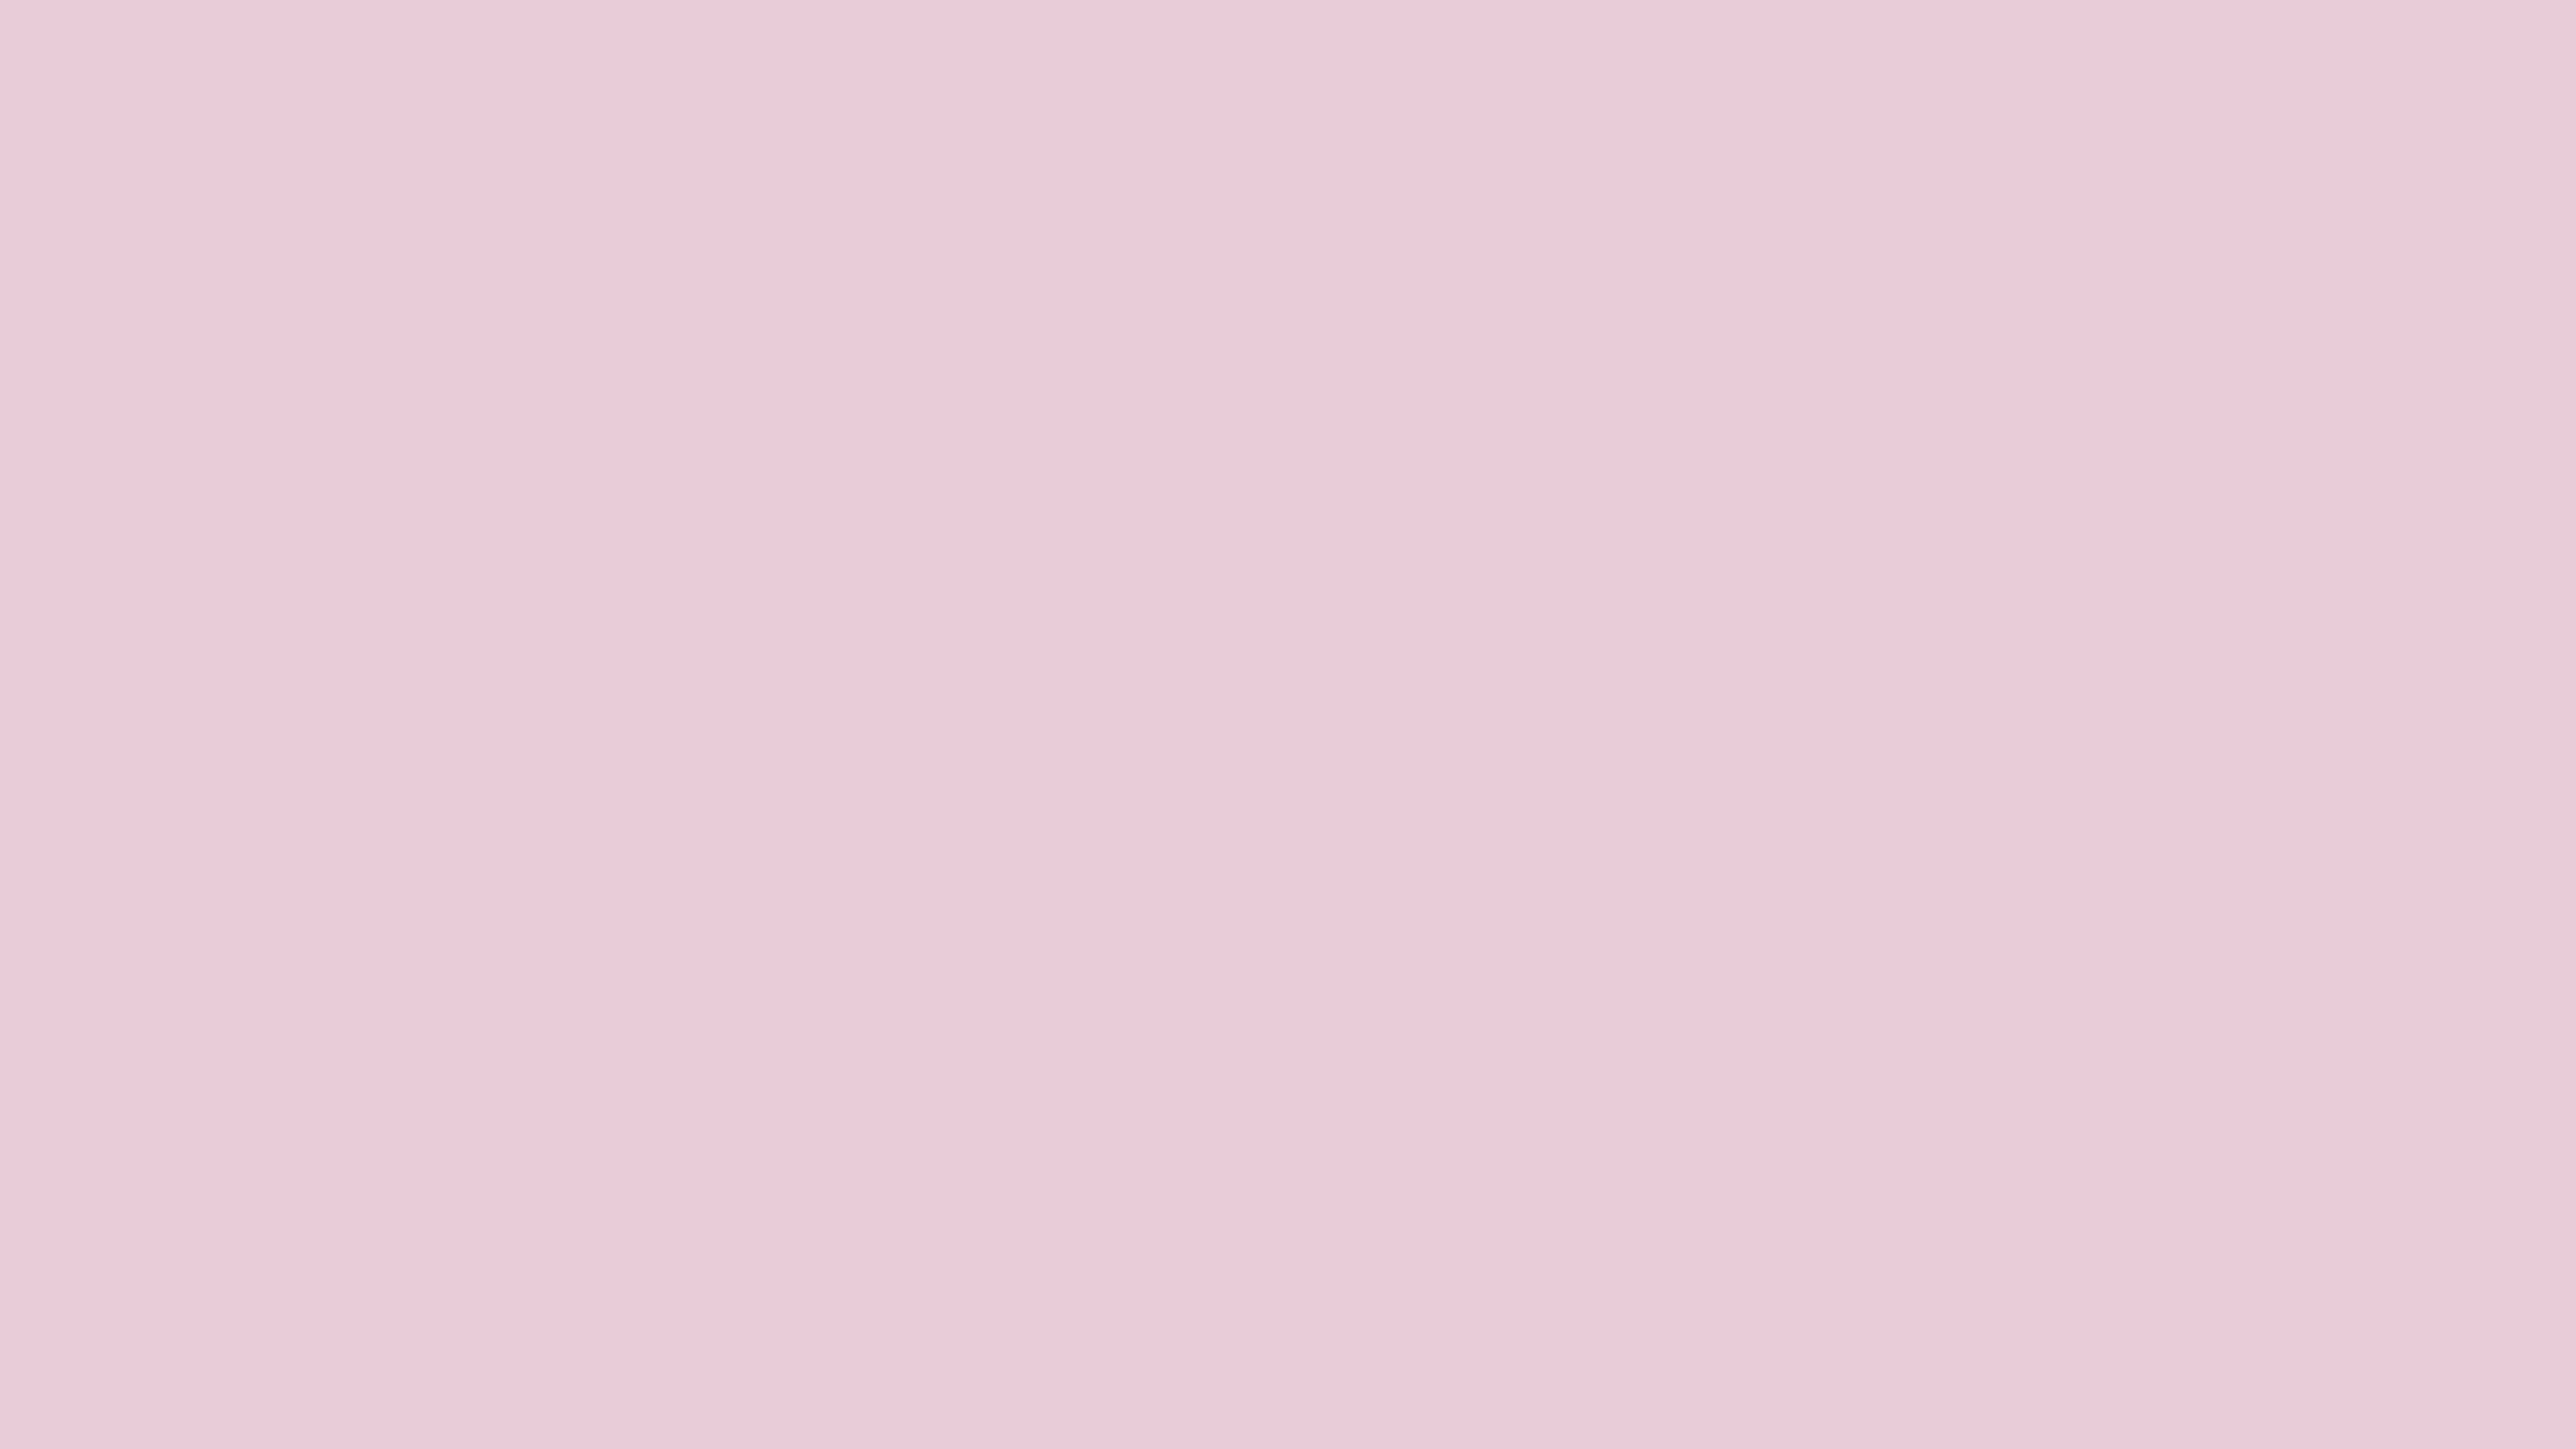 4096x2304 Queen Pink Solid Color Background